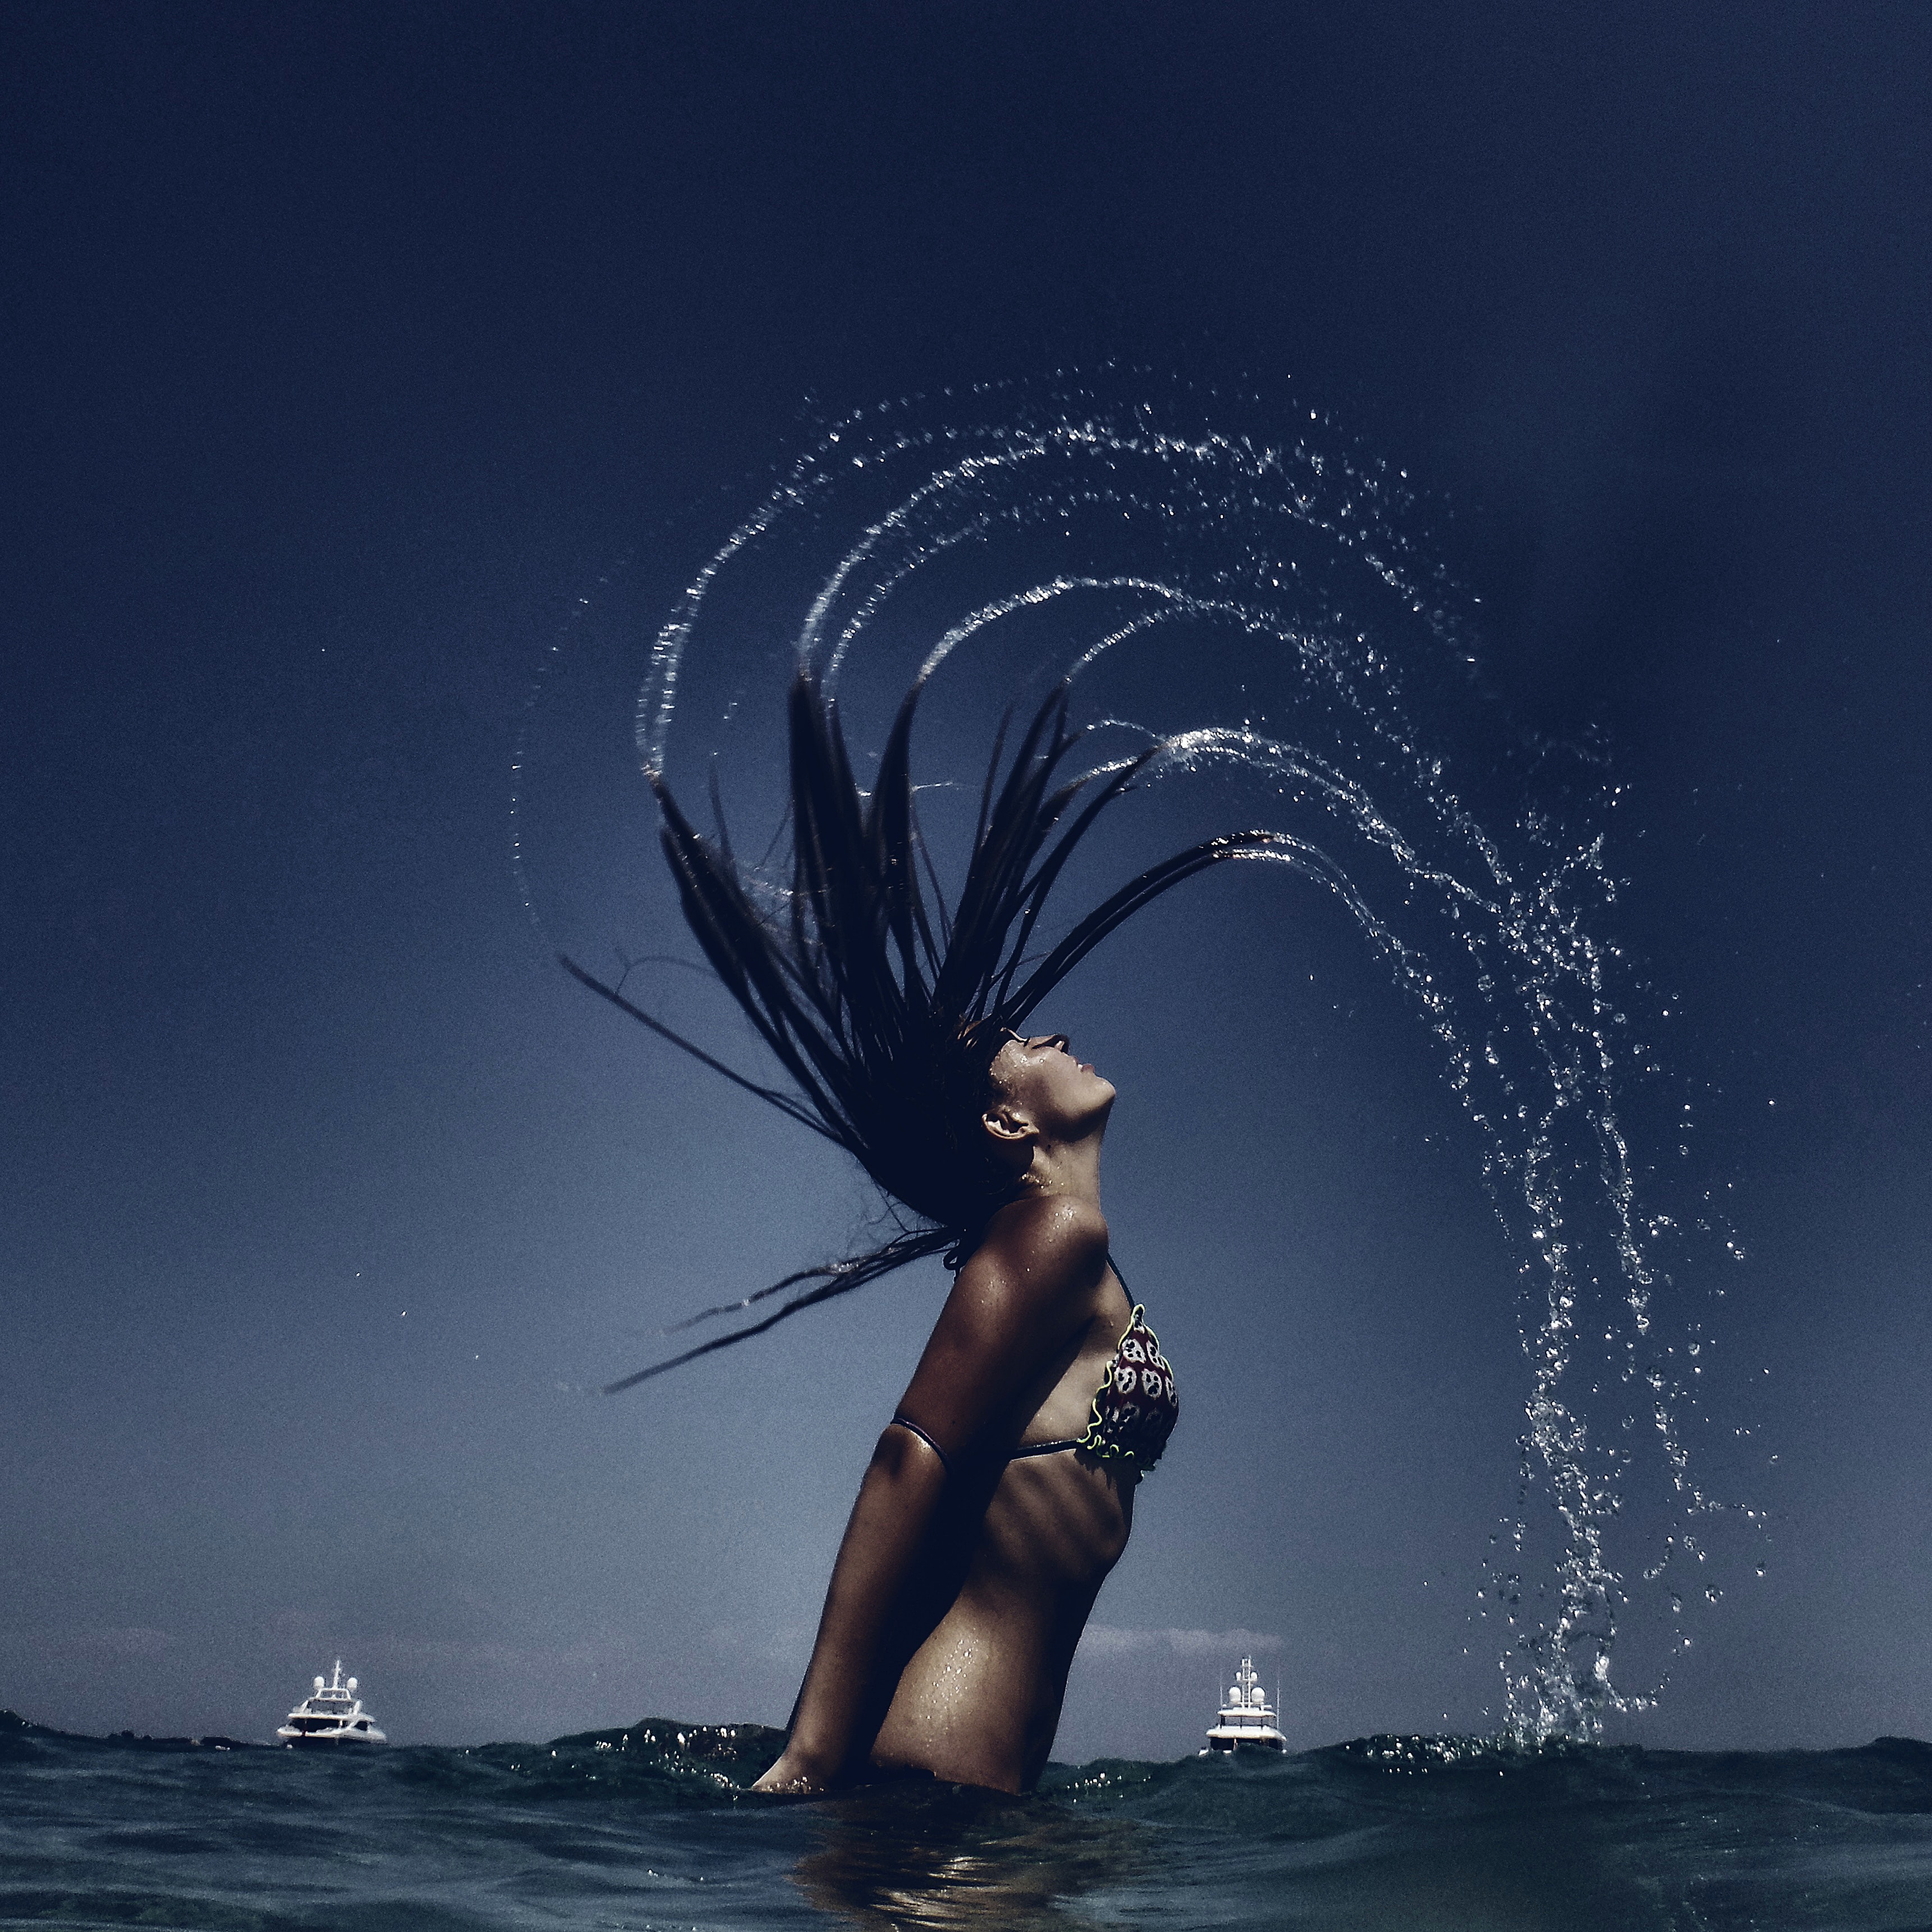 woman flipping hair while soaking in body of water